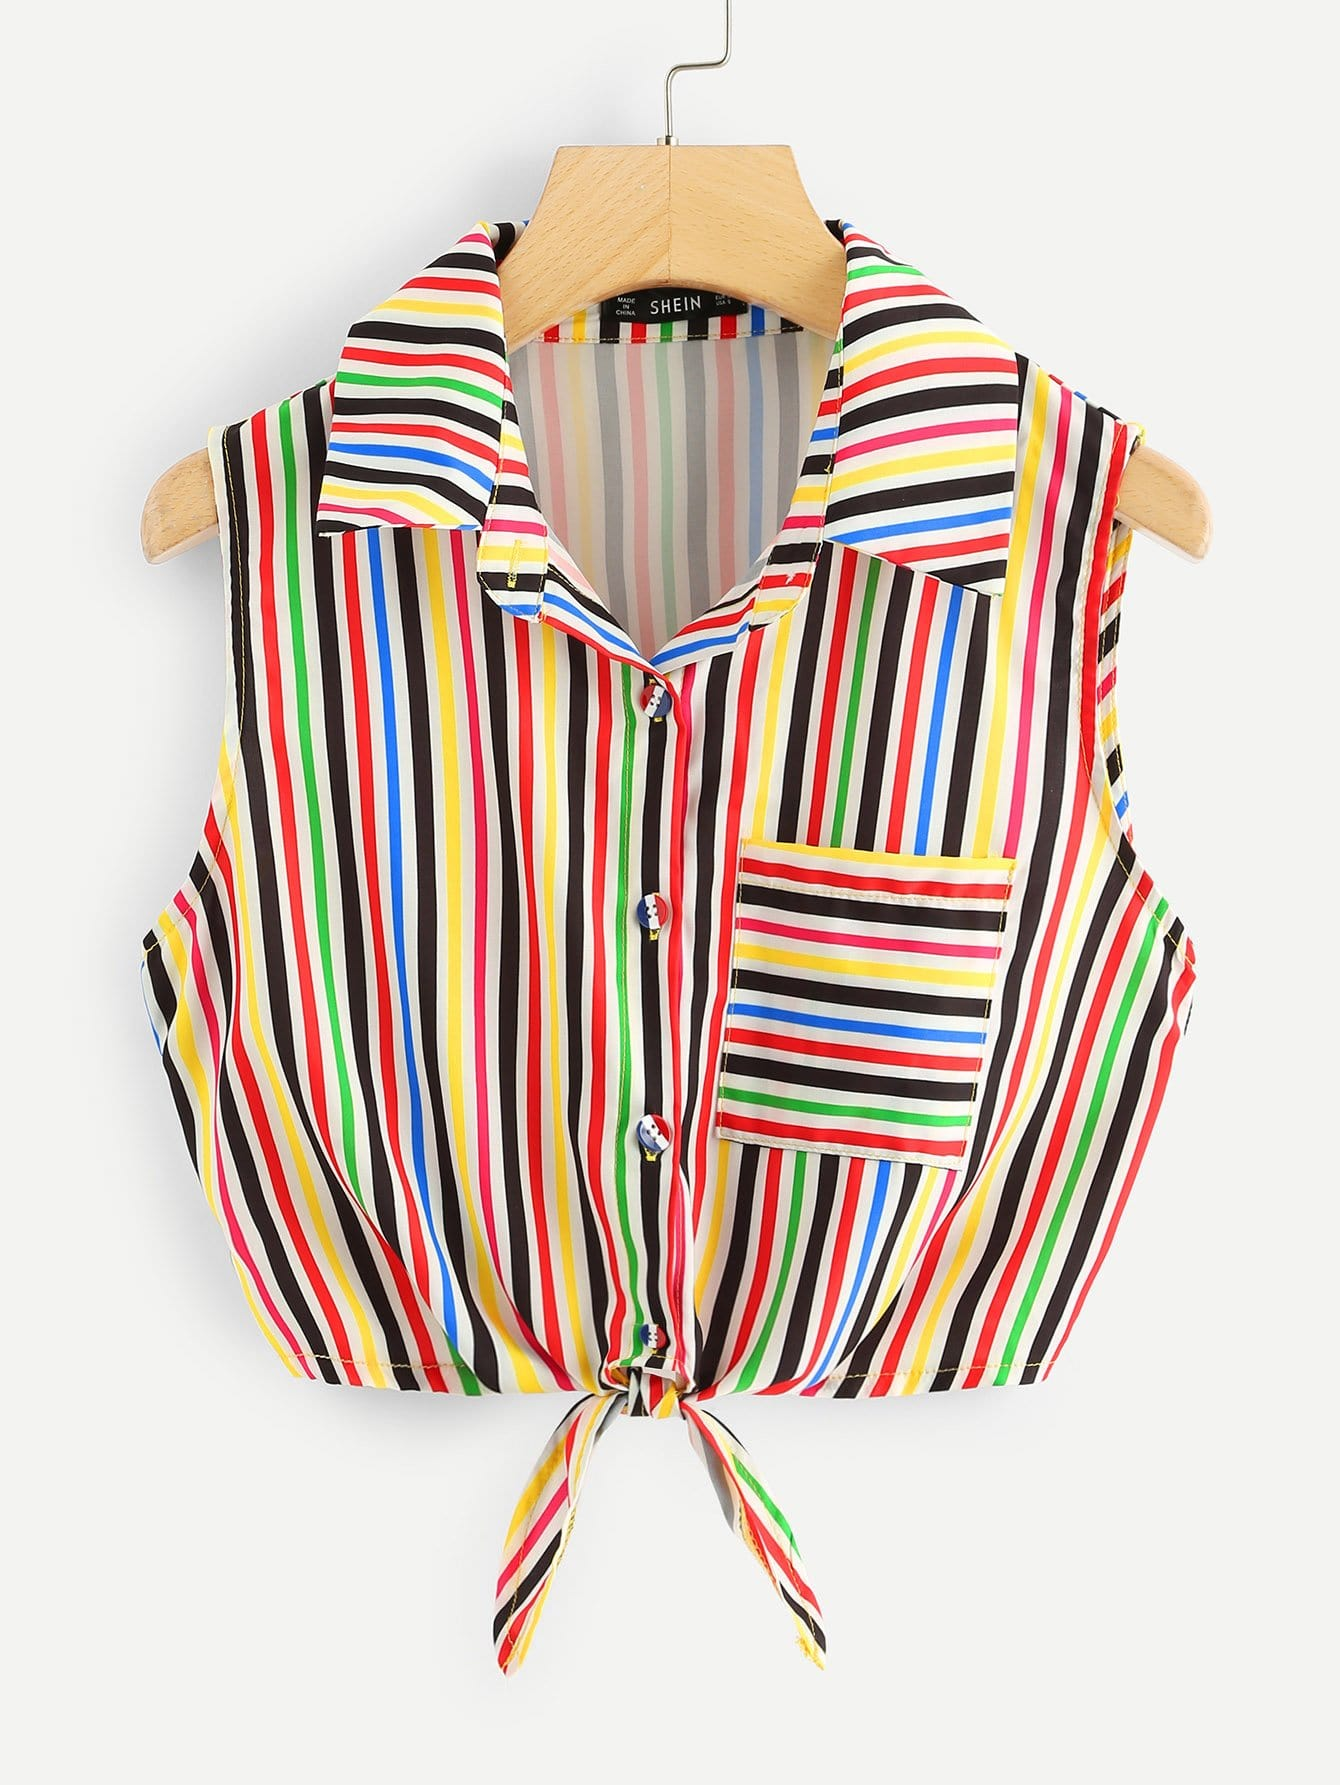 Pocket Patched Striped Knot Shirt pocket patched striped shell shirt